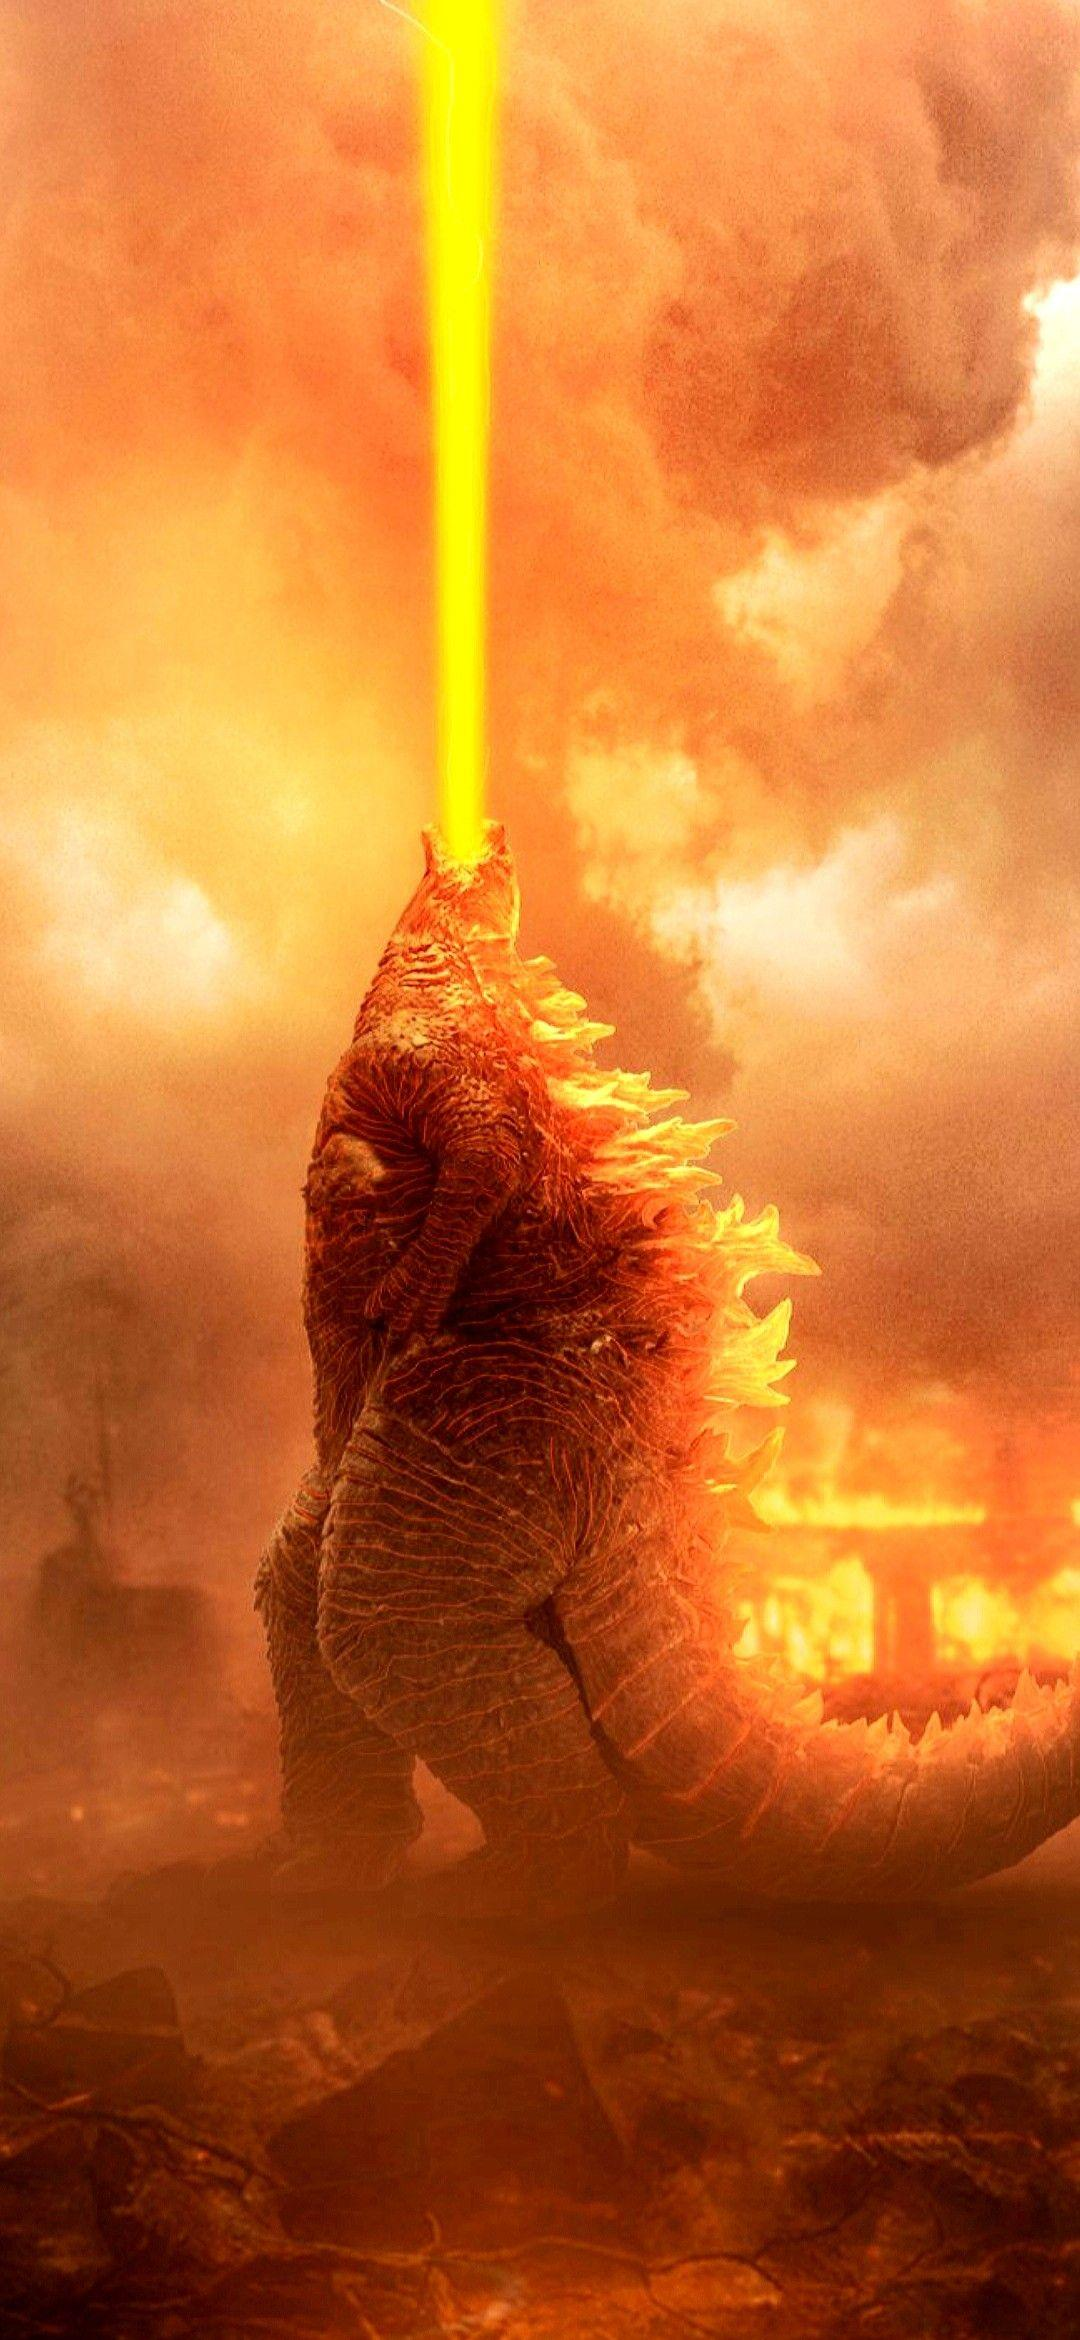 Fire Godzilla Hd Android Wallpapers Wallpaper Cave